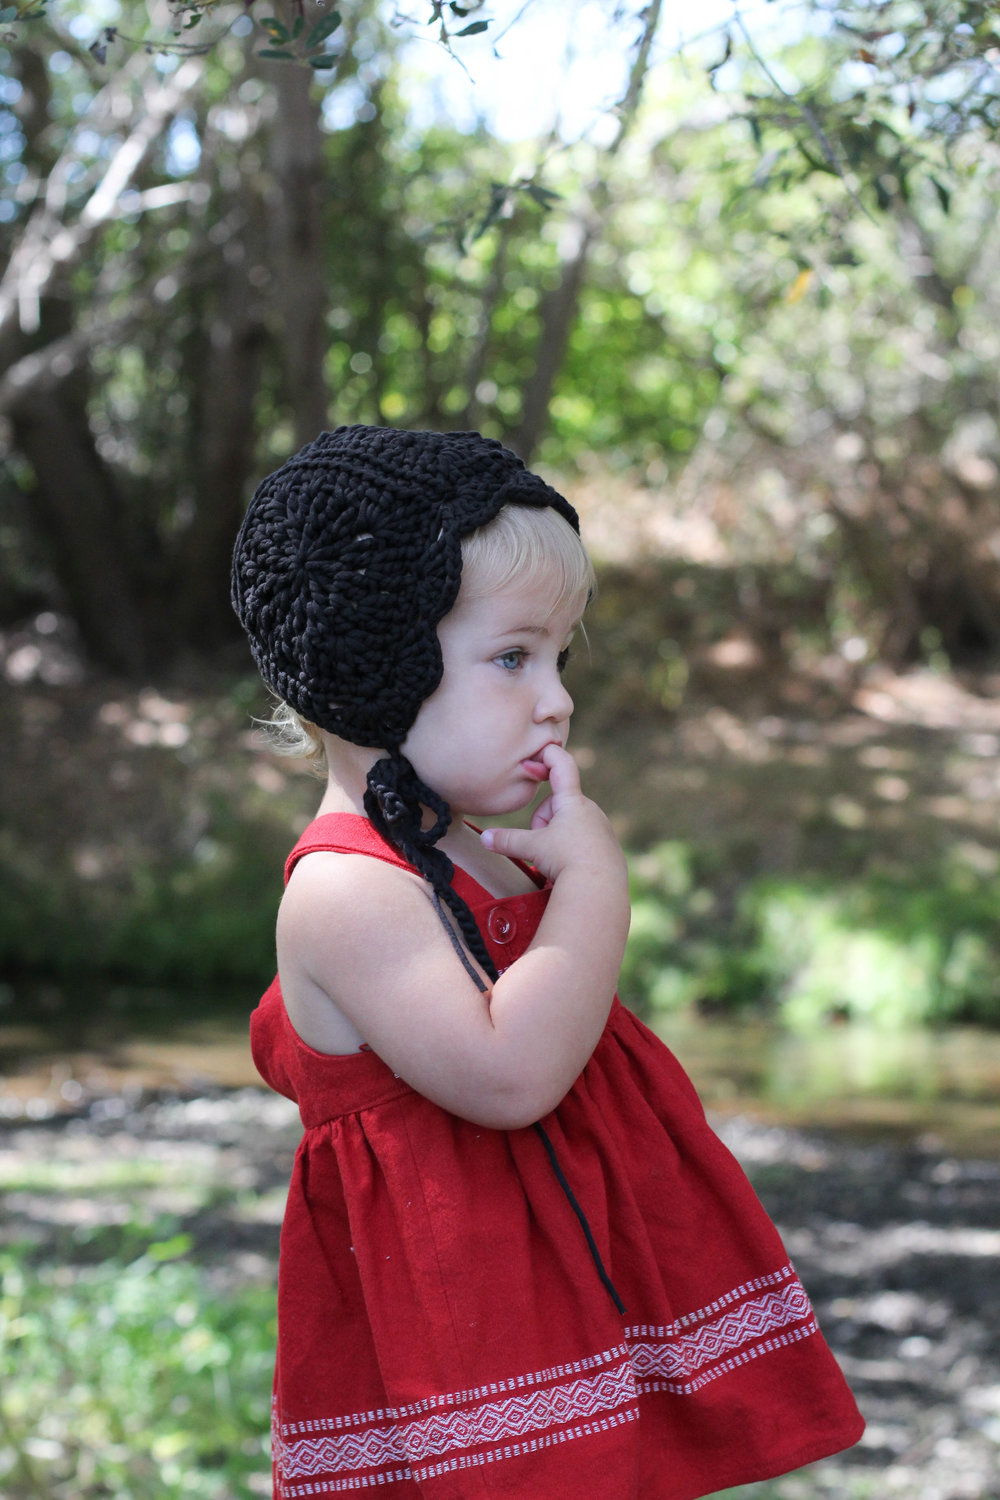 Crochet Baby Bonnet in Black, handmade by bluecorduroy.com